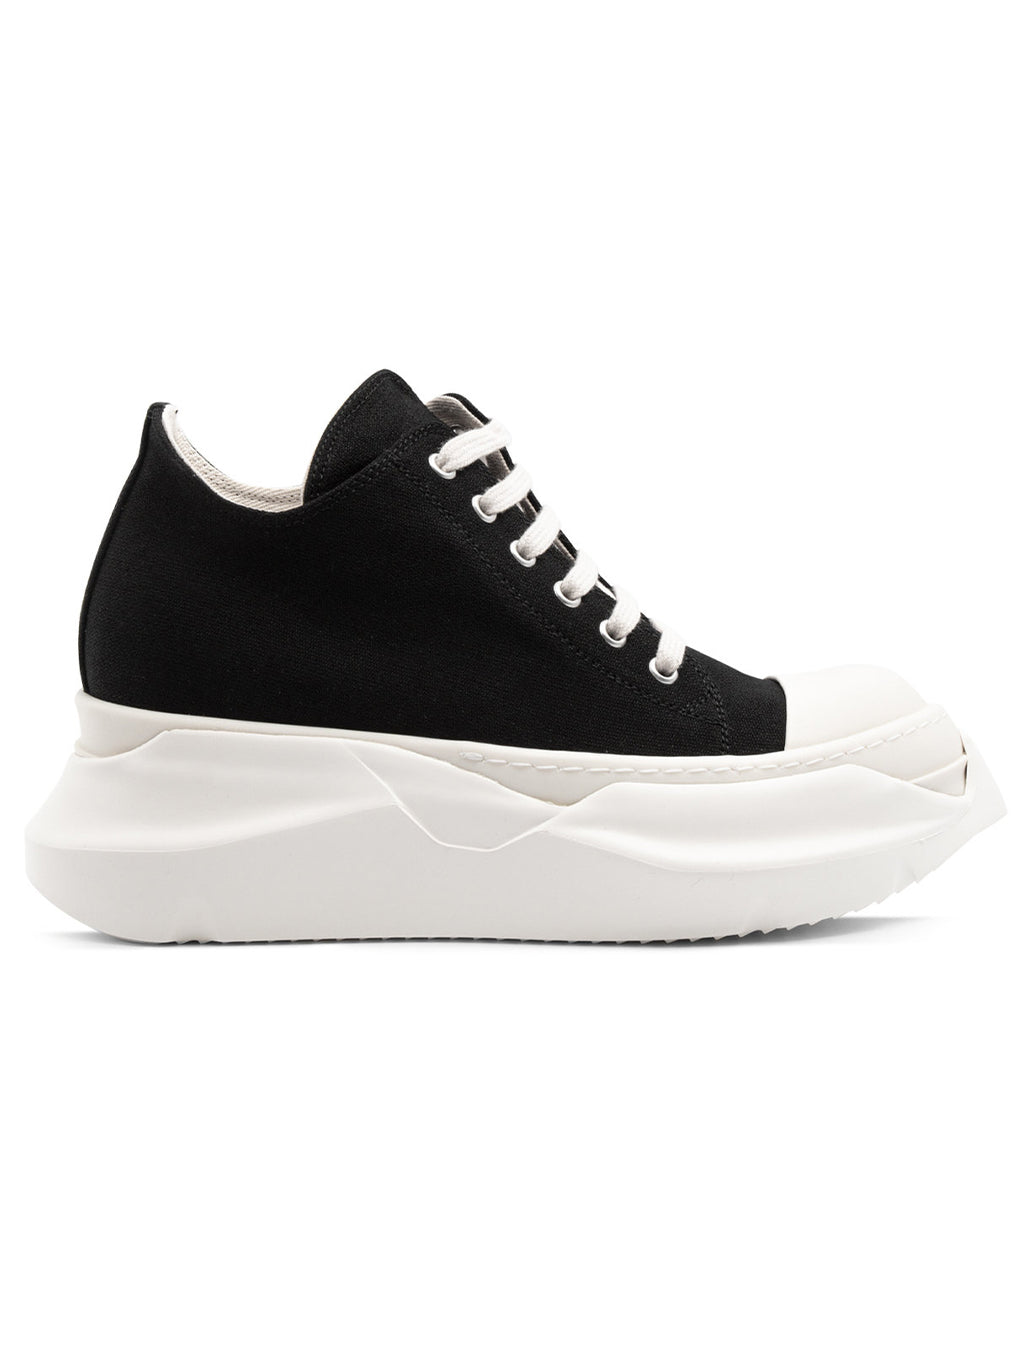 Blacks Abstract Low Sneakers